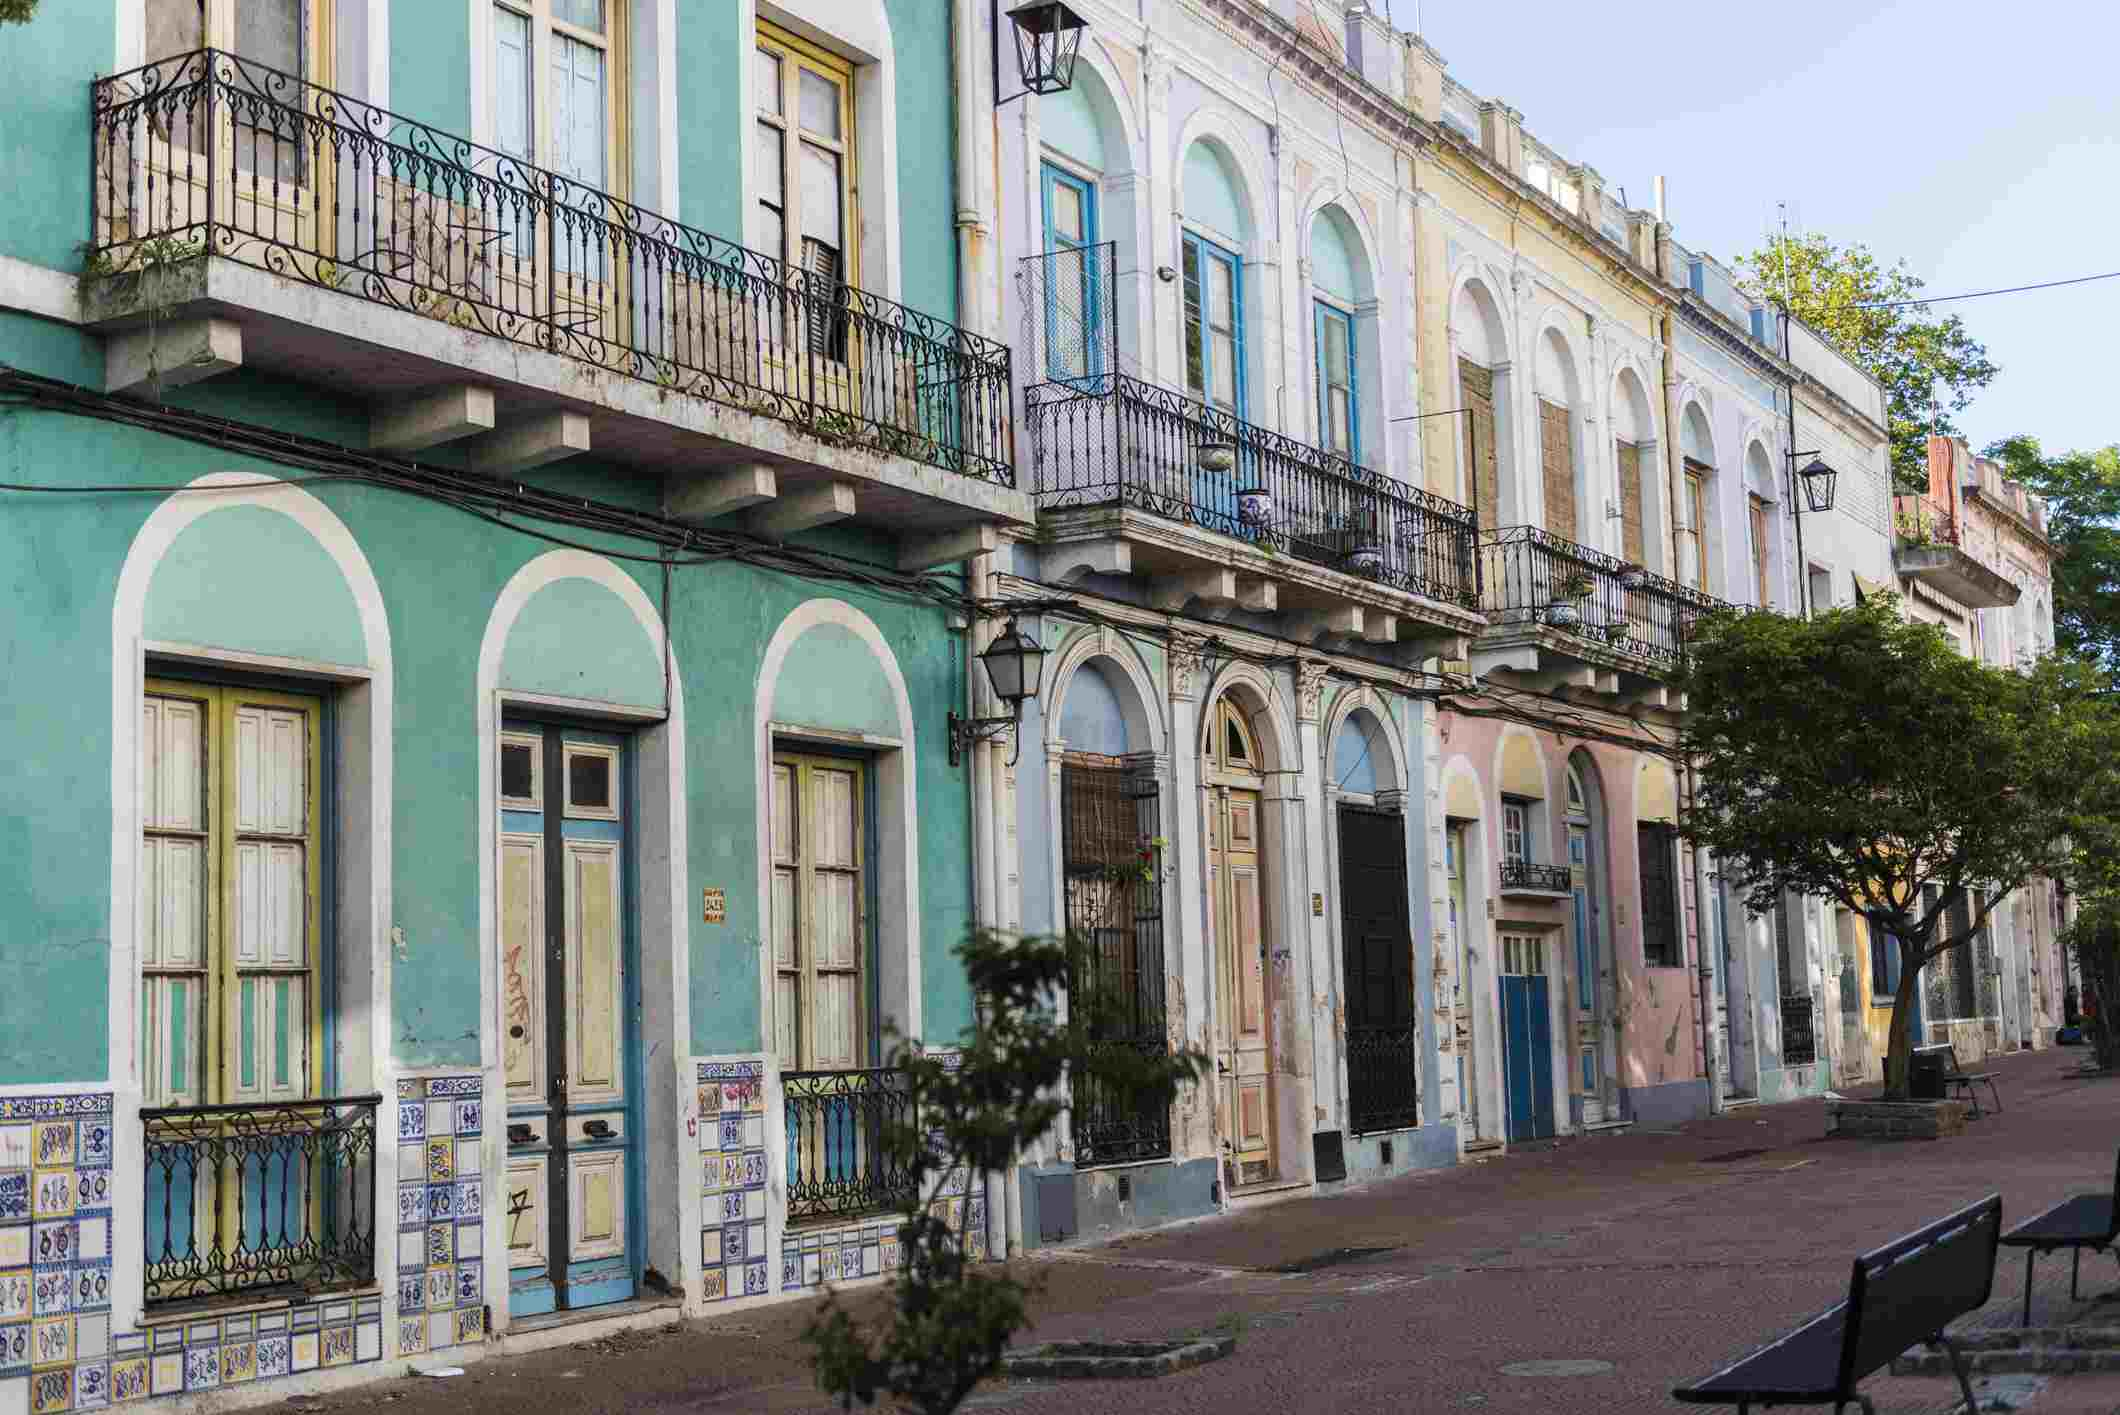 Streetview in Montevideo, Uruguay of colorful colonial architecture